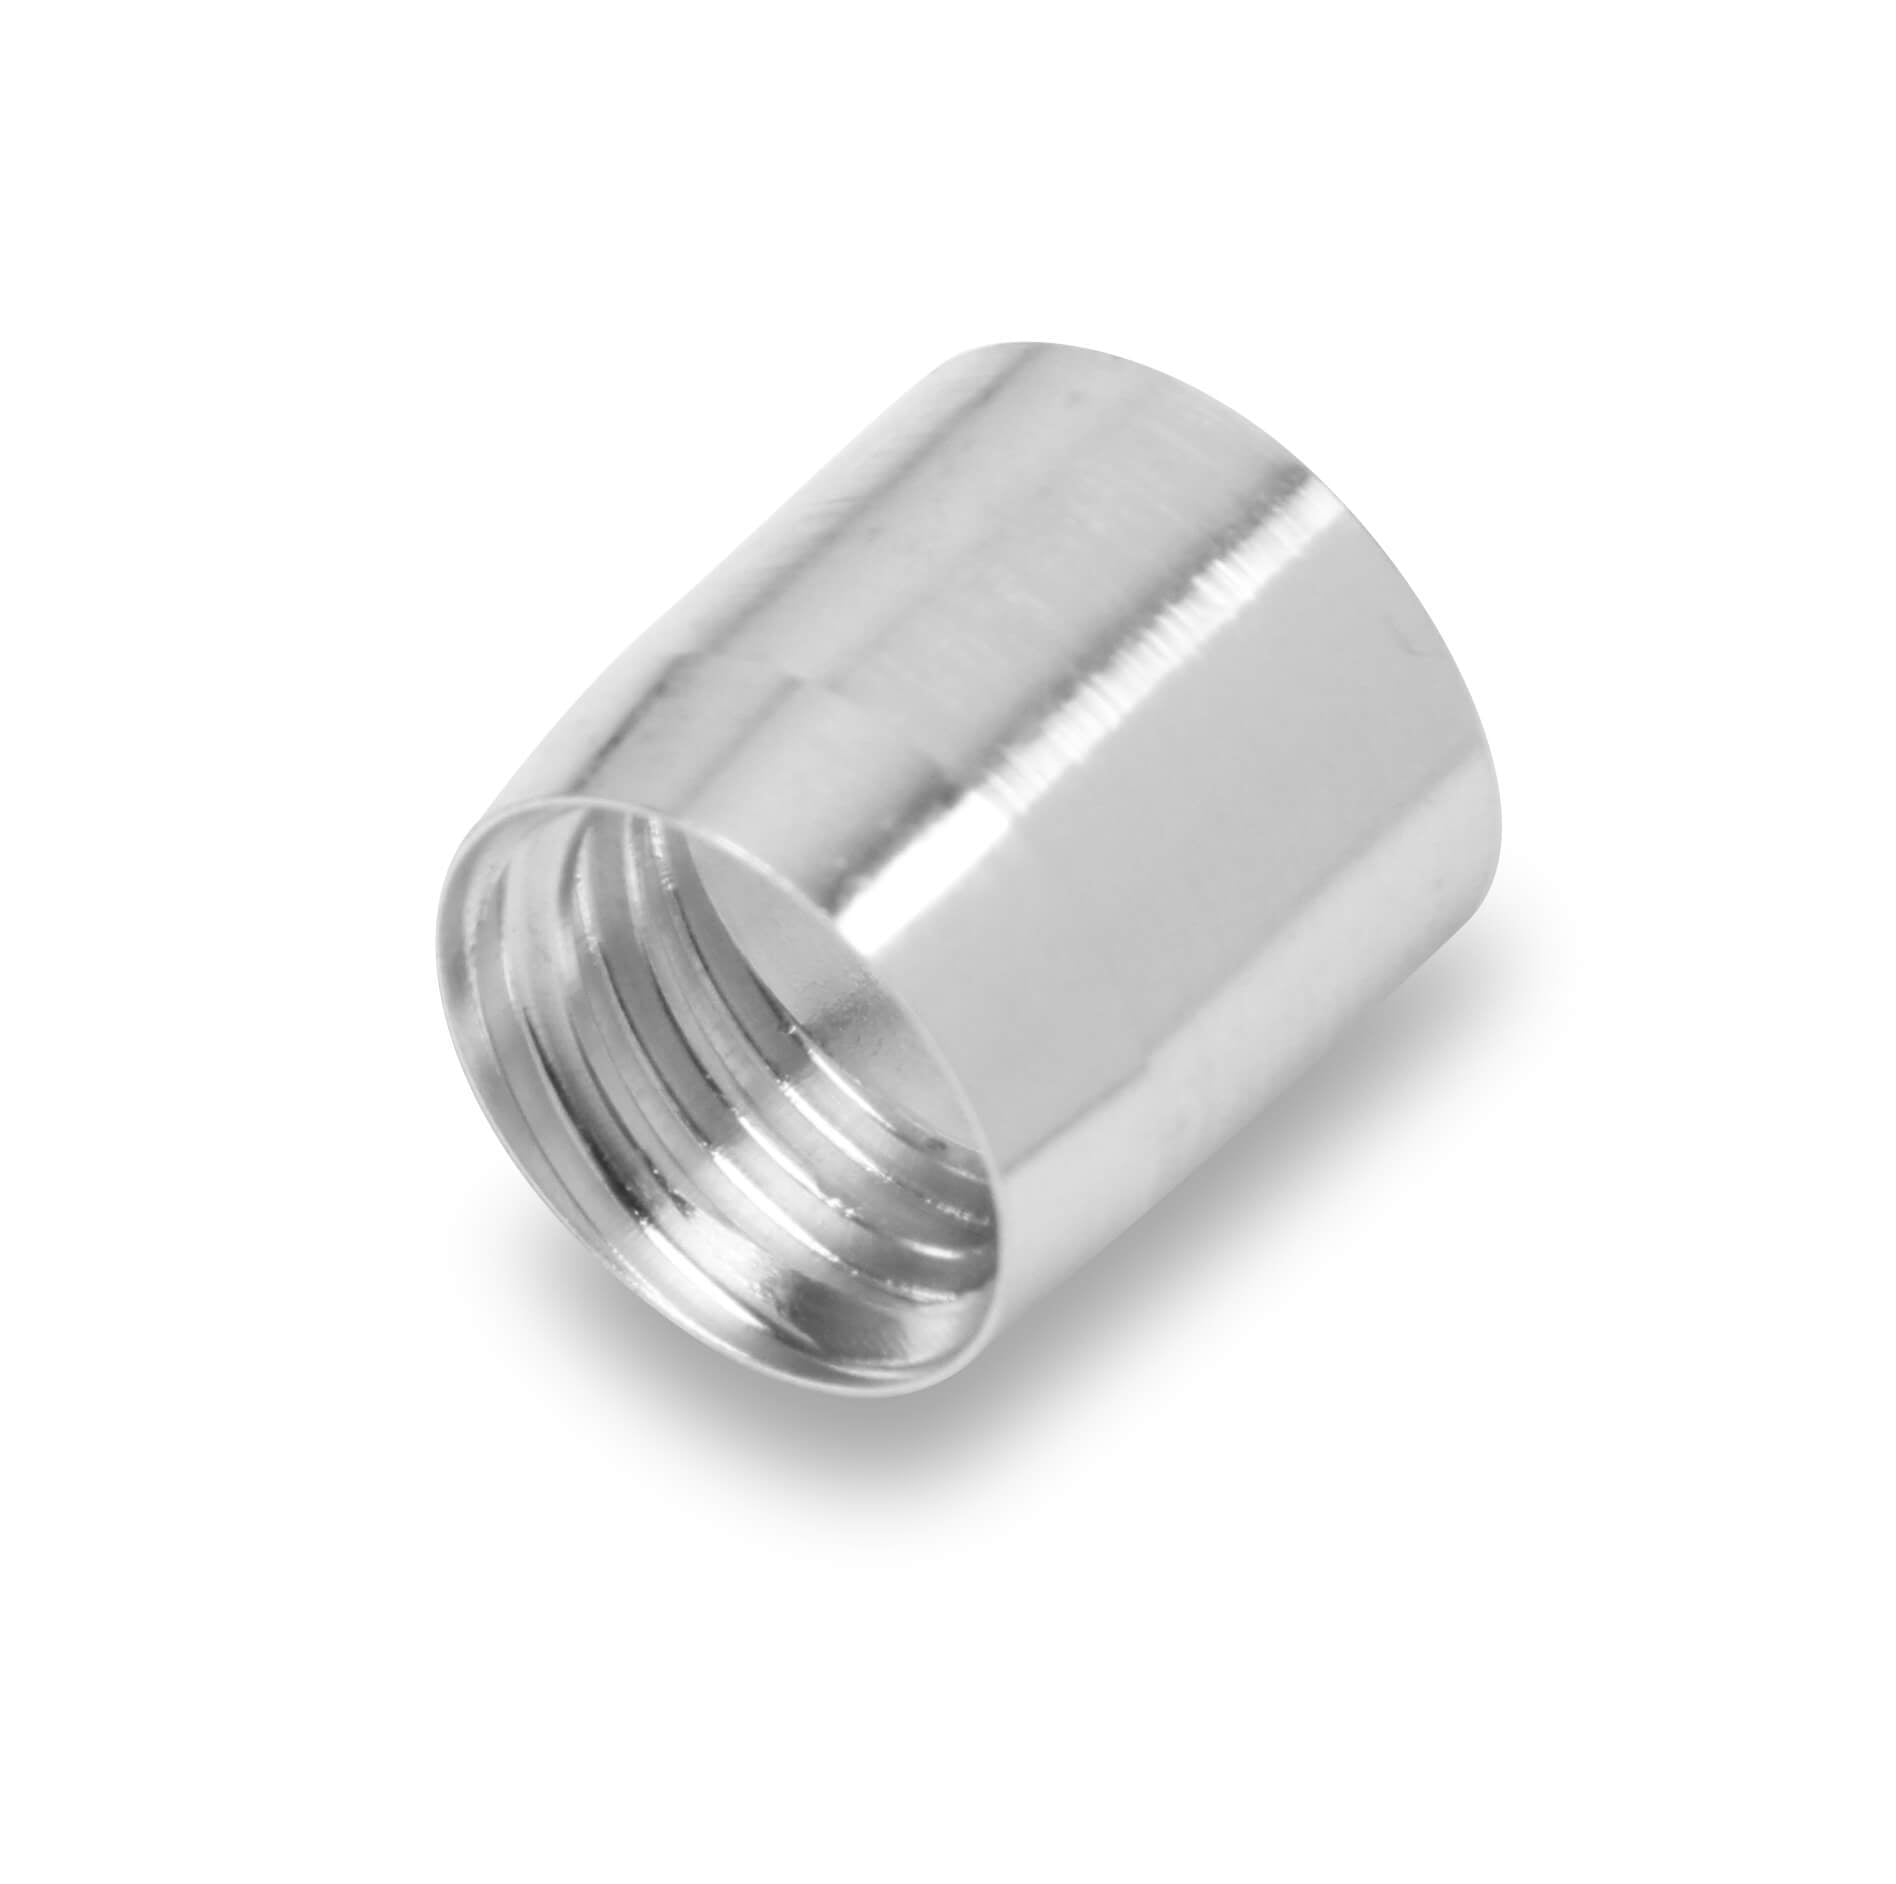 Earls AT983712ERL Ano-Tuff Adapter Earl/'s Plumbing